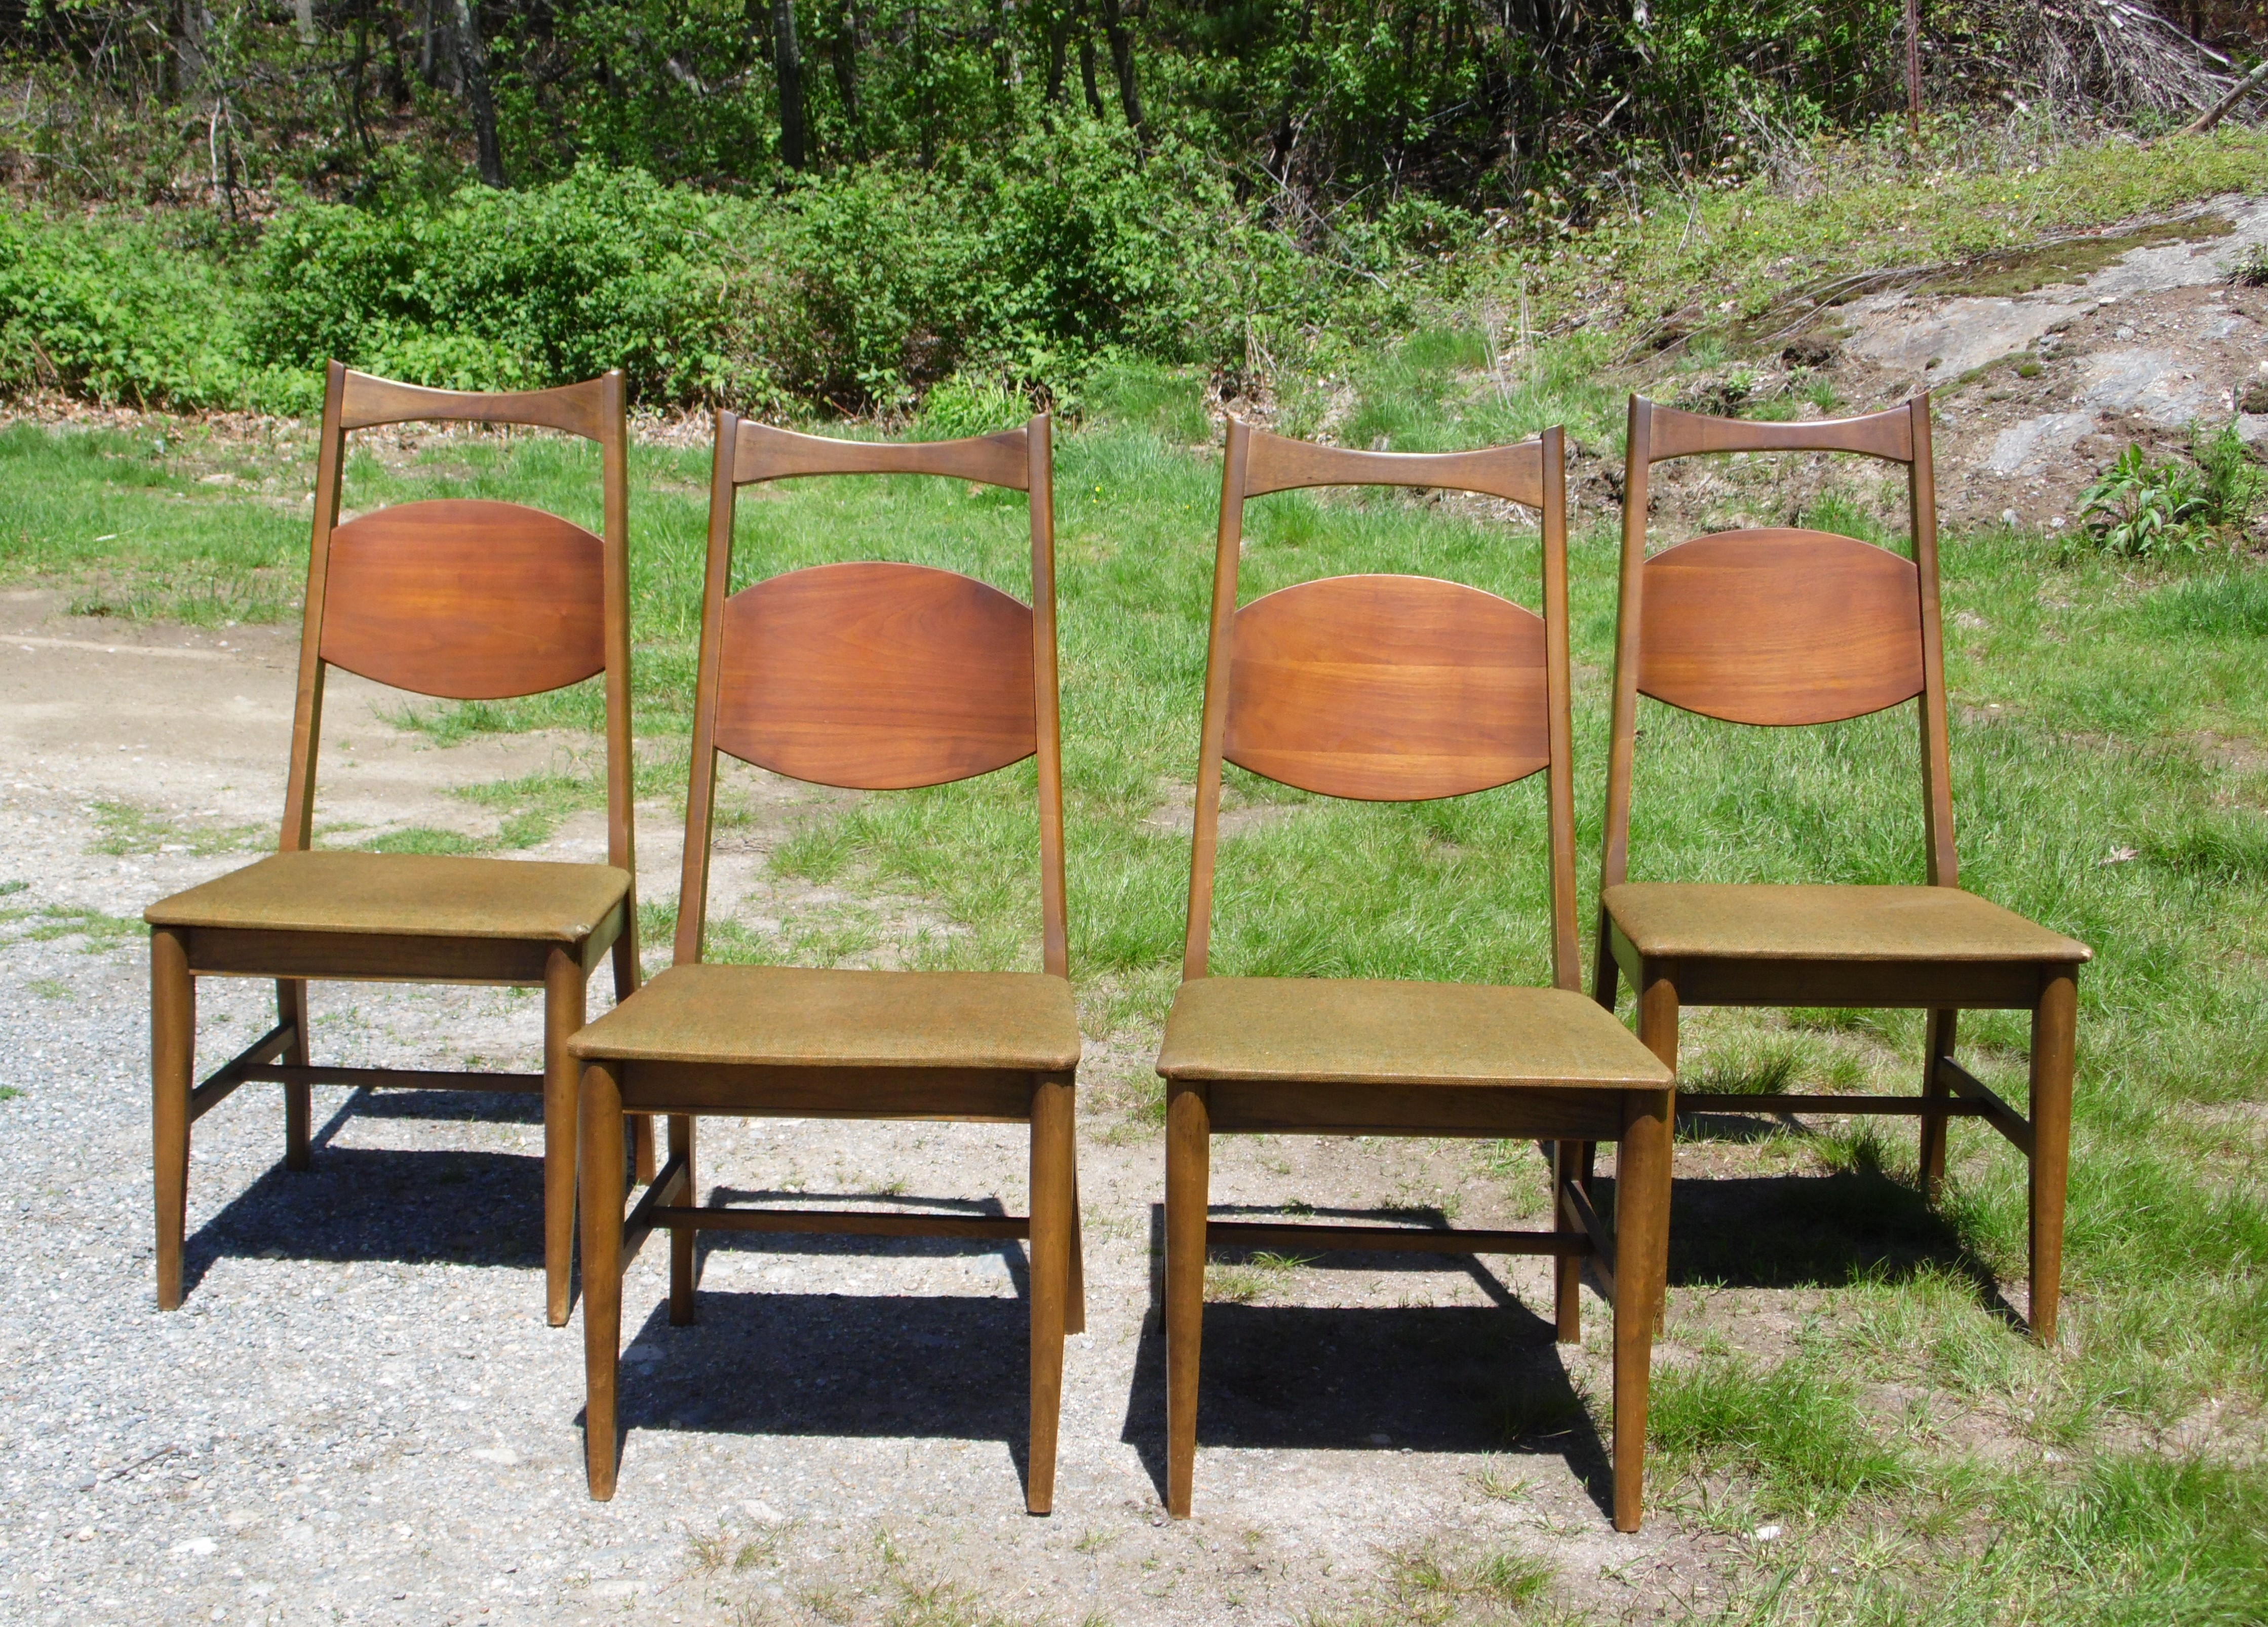 bassett furniture chairs office chair for disabled person vintage set of 4 mid century modern dining